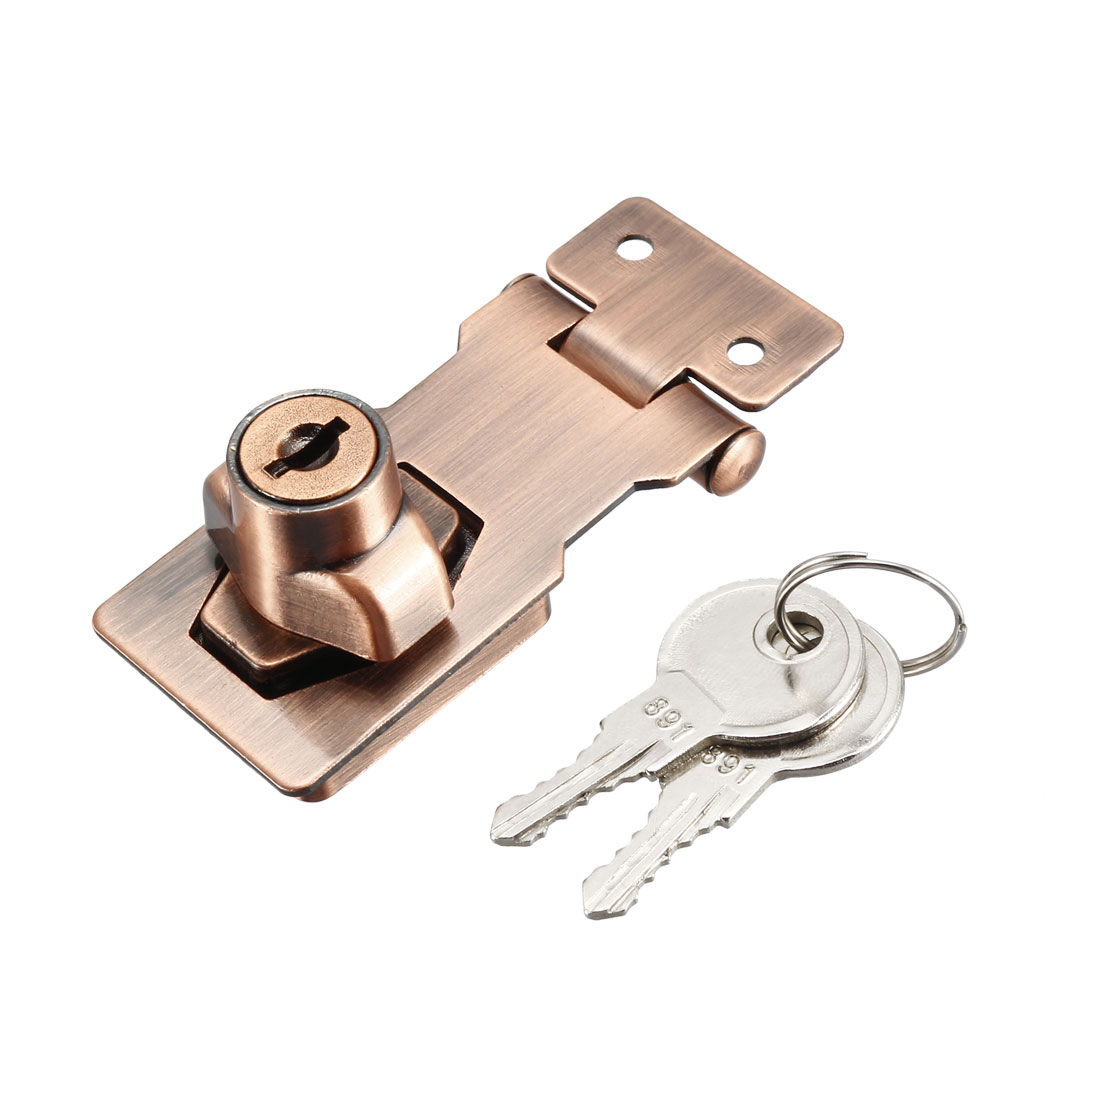 Keyed Hasp Lock 80mm Twist Knob Keyed Locking Hasp Red Copper Tone